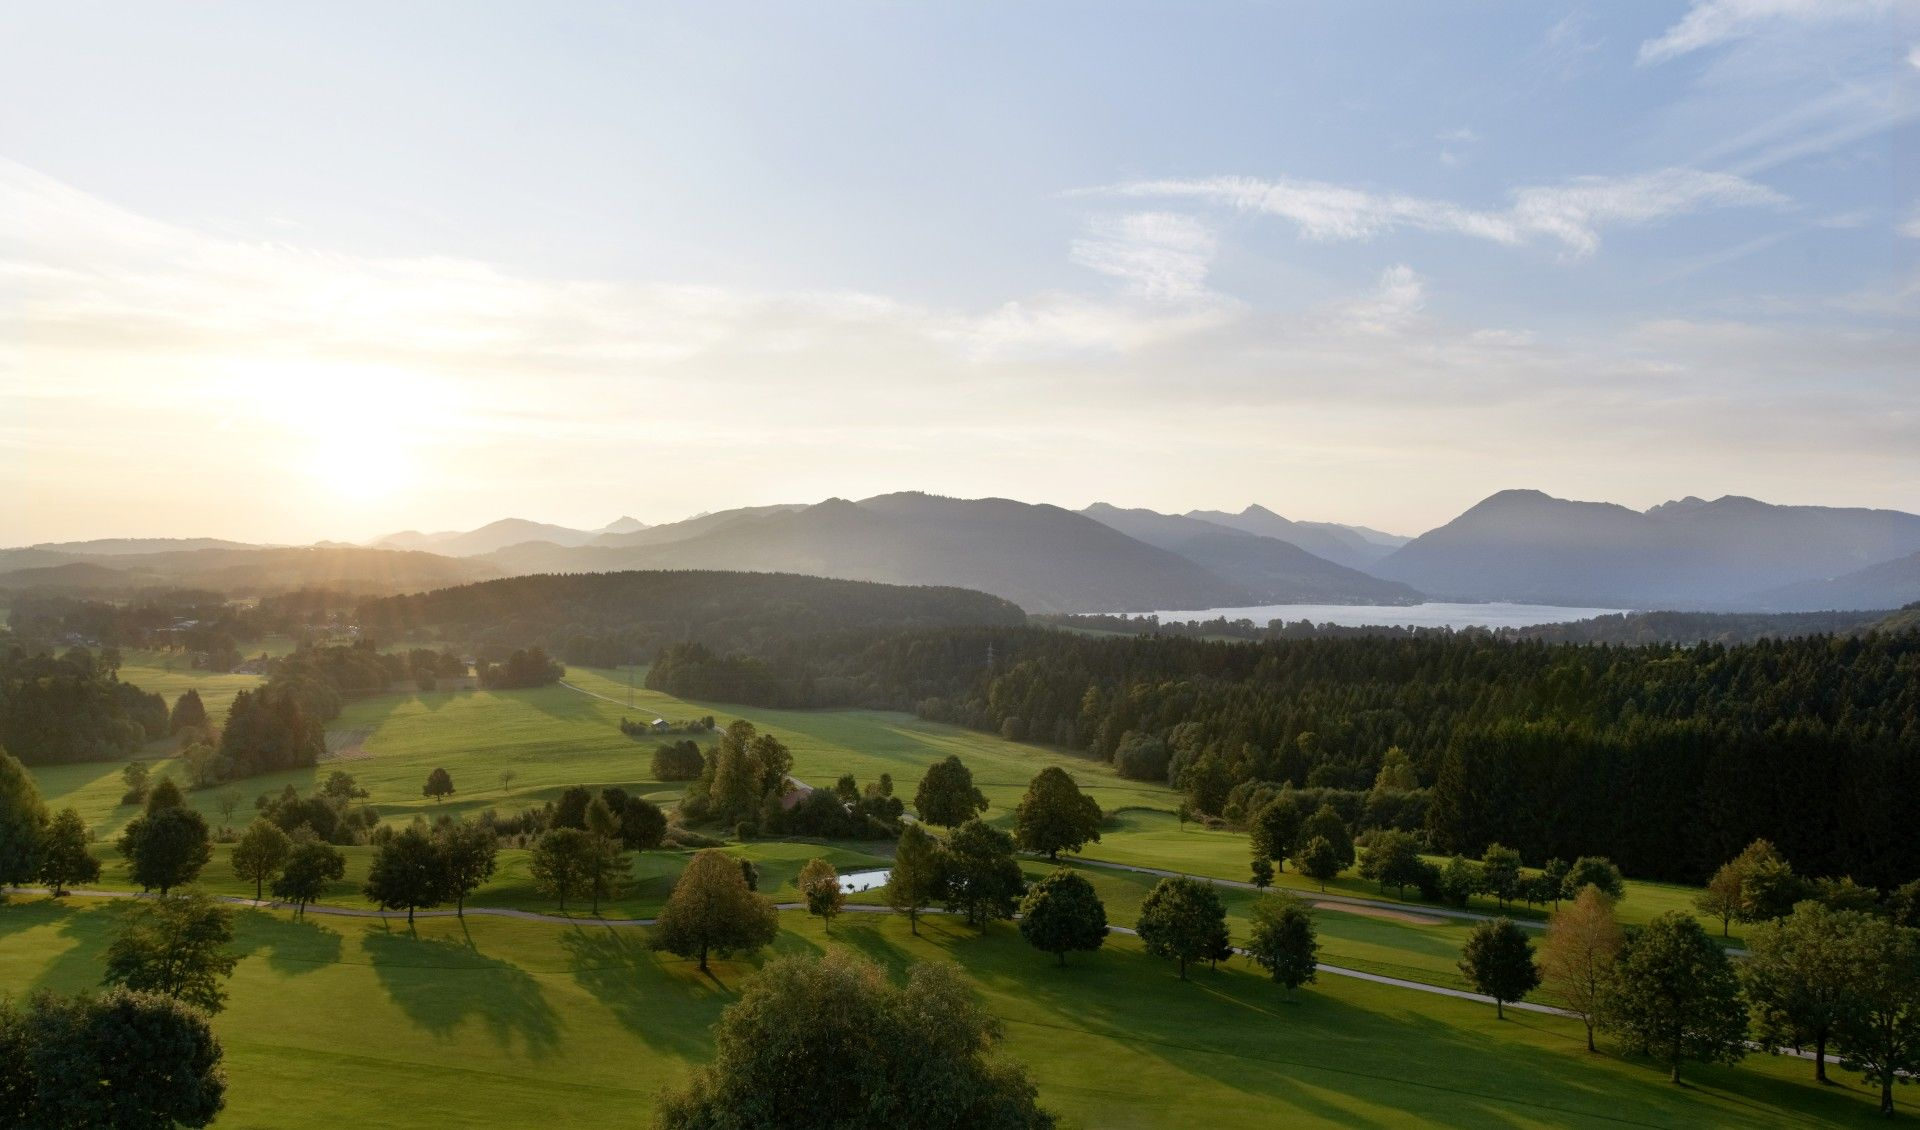 Der margarethenhof golf and hotel am tegernsee cover picture